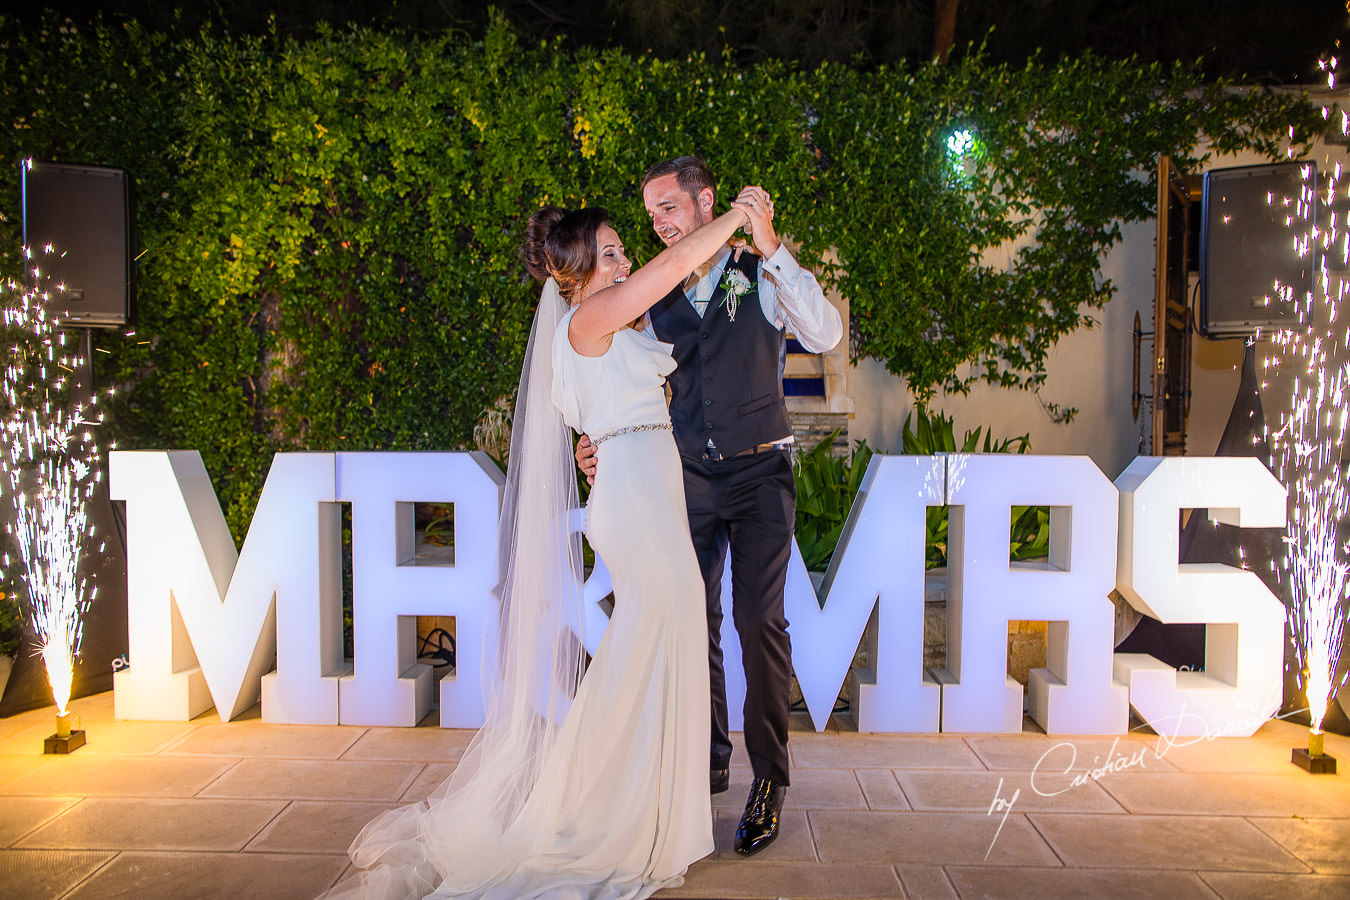 First dance moments captured by Cristian Dascalu during an elegant Aphrodite Hills Wedding in Cyprus.